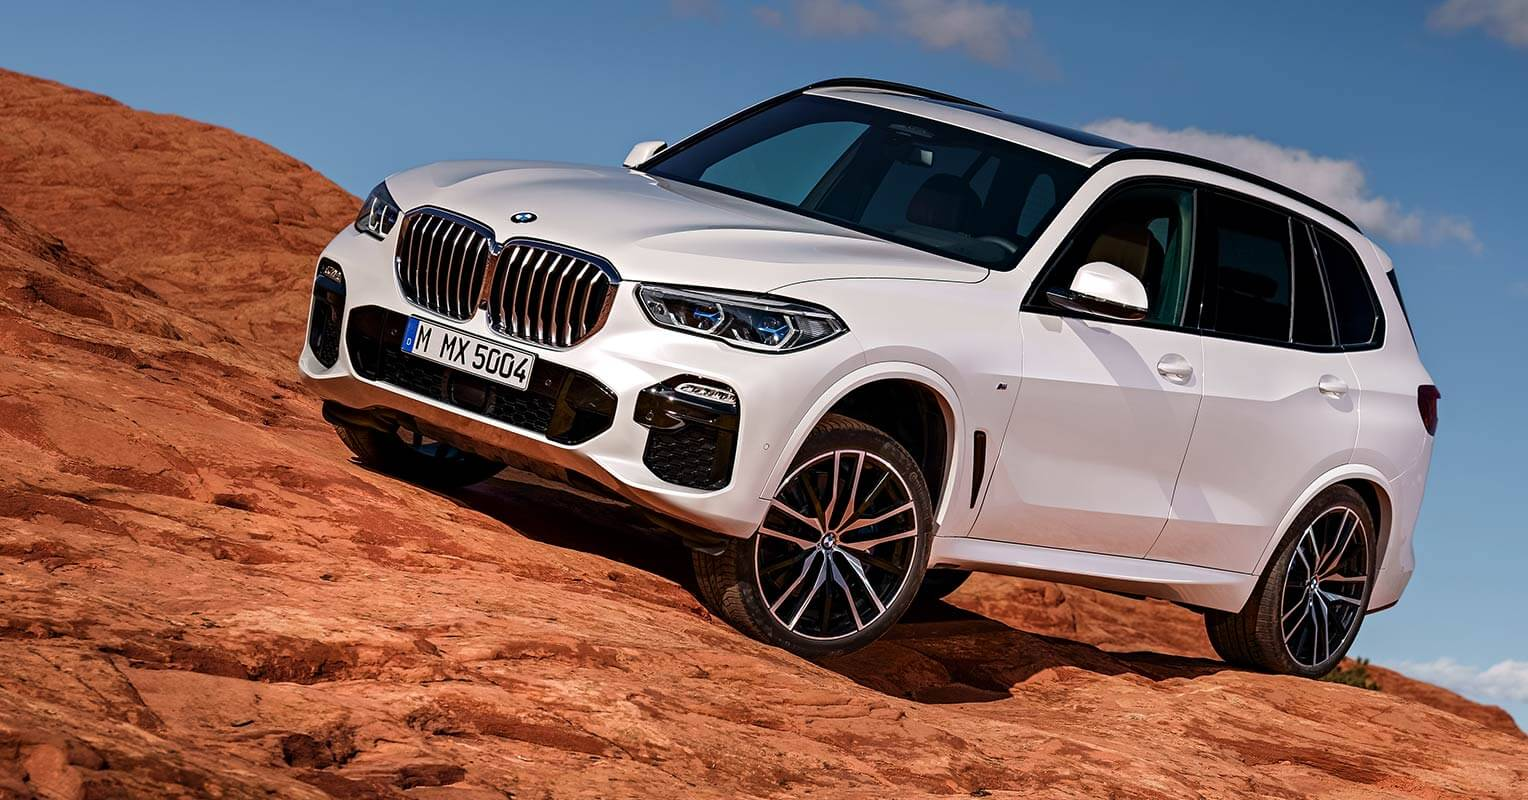 BMW X5 2018 offroad frontal